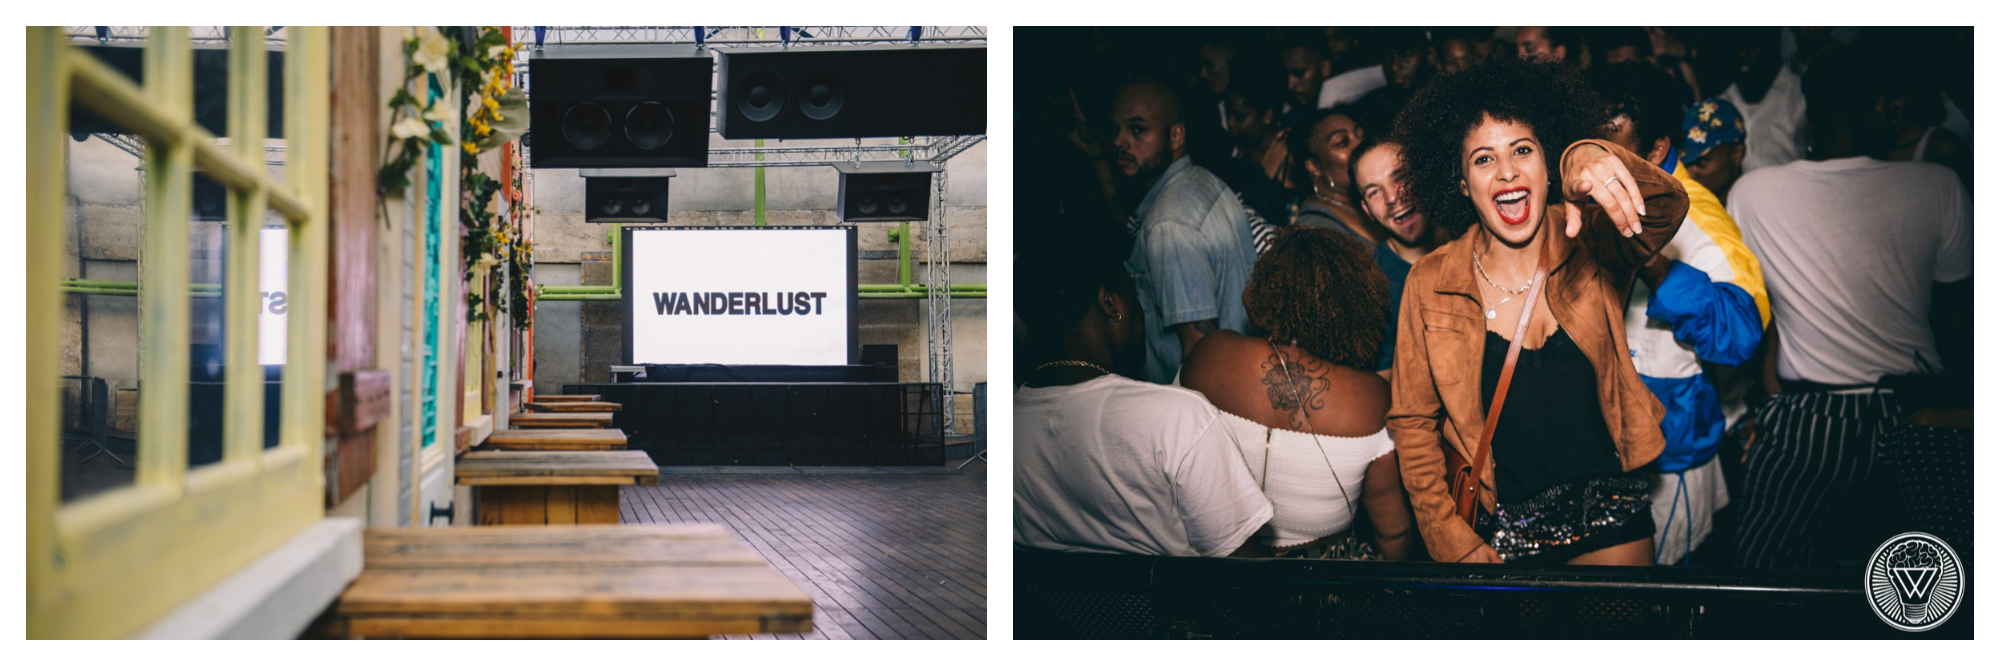 An empty dance floor with a TV screen with the words Wanderlust on it and speakers above (left). A woman pointing at the photographer and smiling on the dance floor of a night club (right).